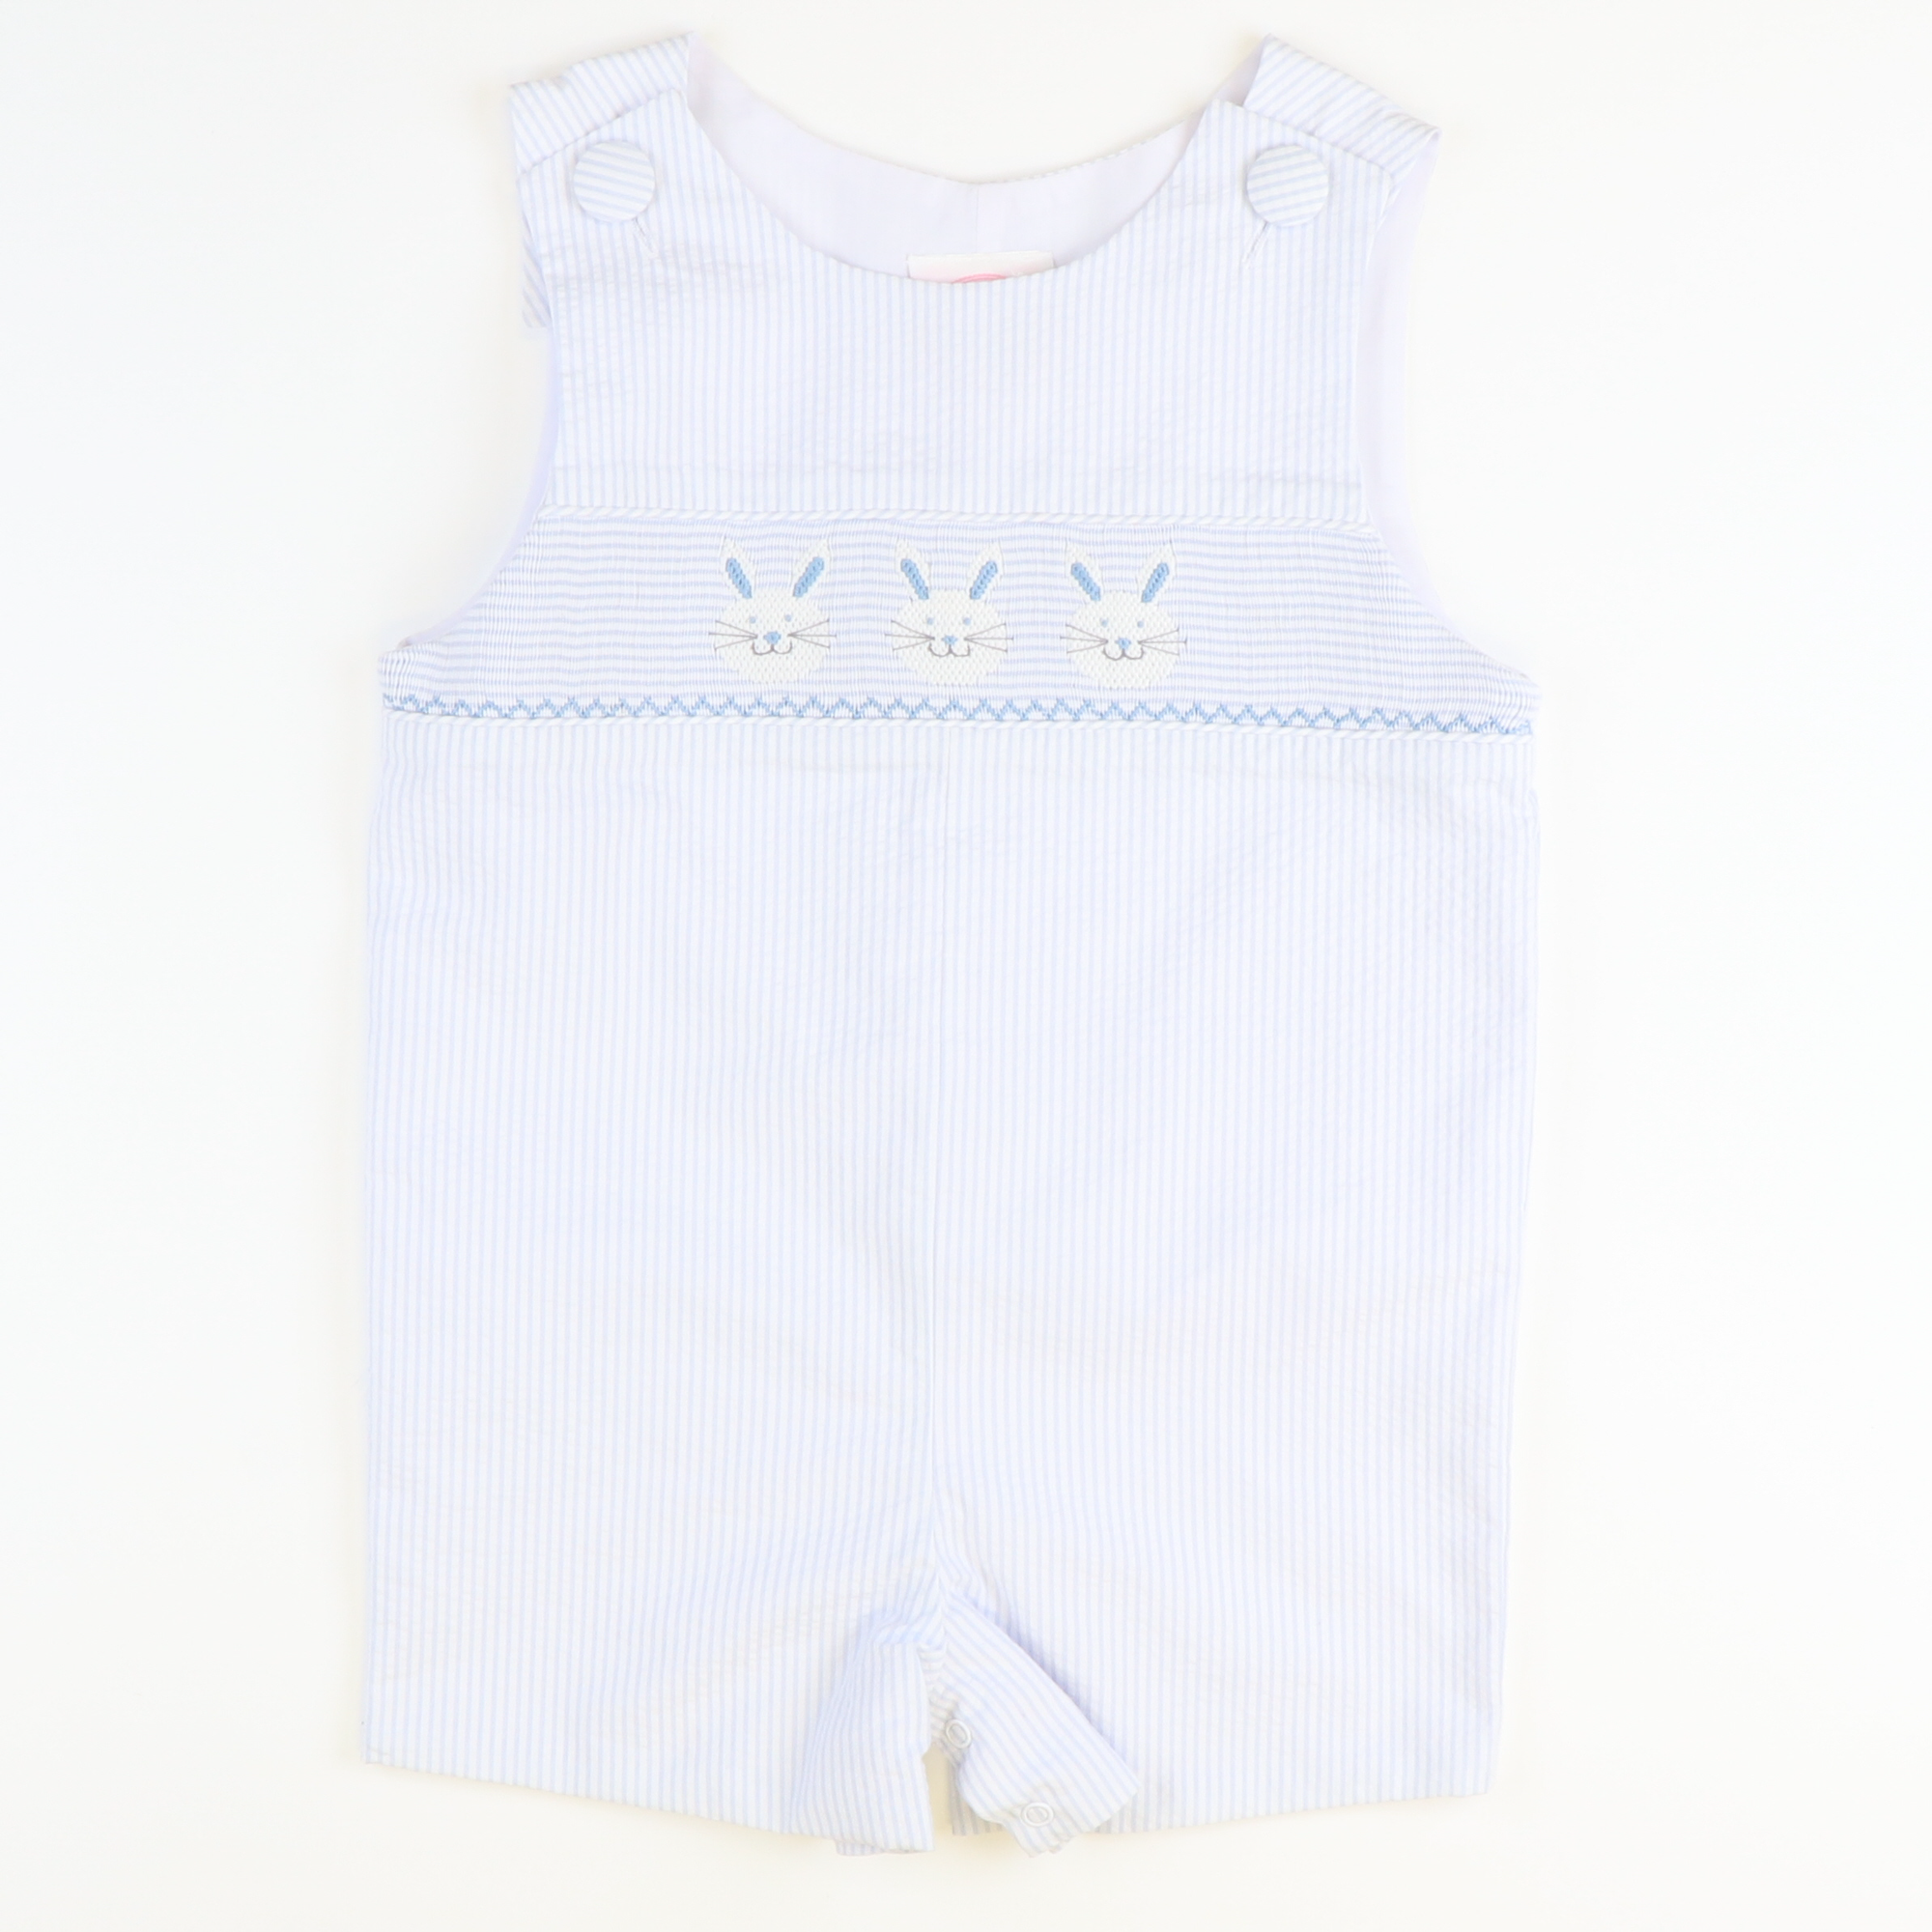 Smocked Bunny Face Shortall - Light Blue Stripe Seersucker